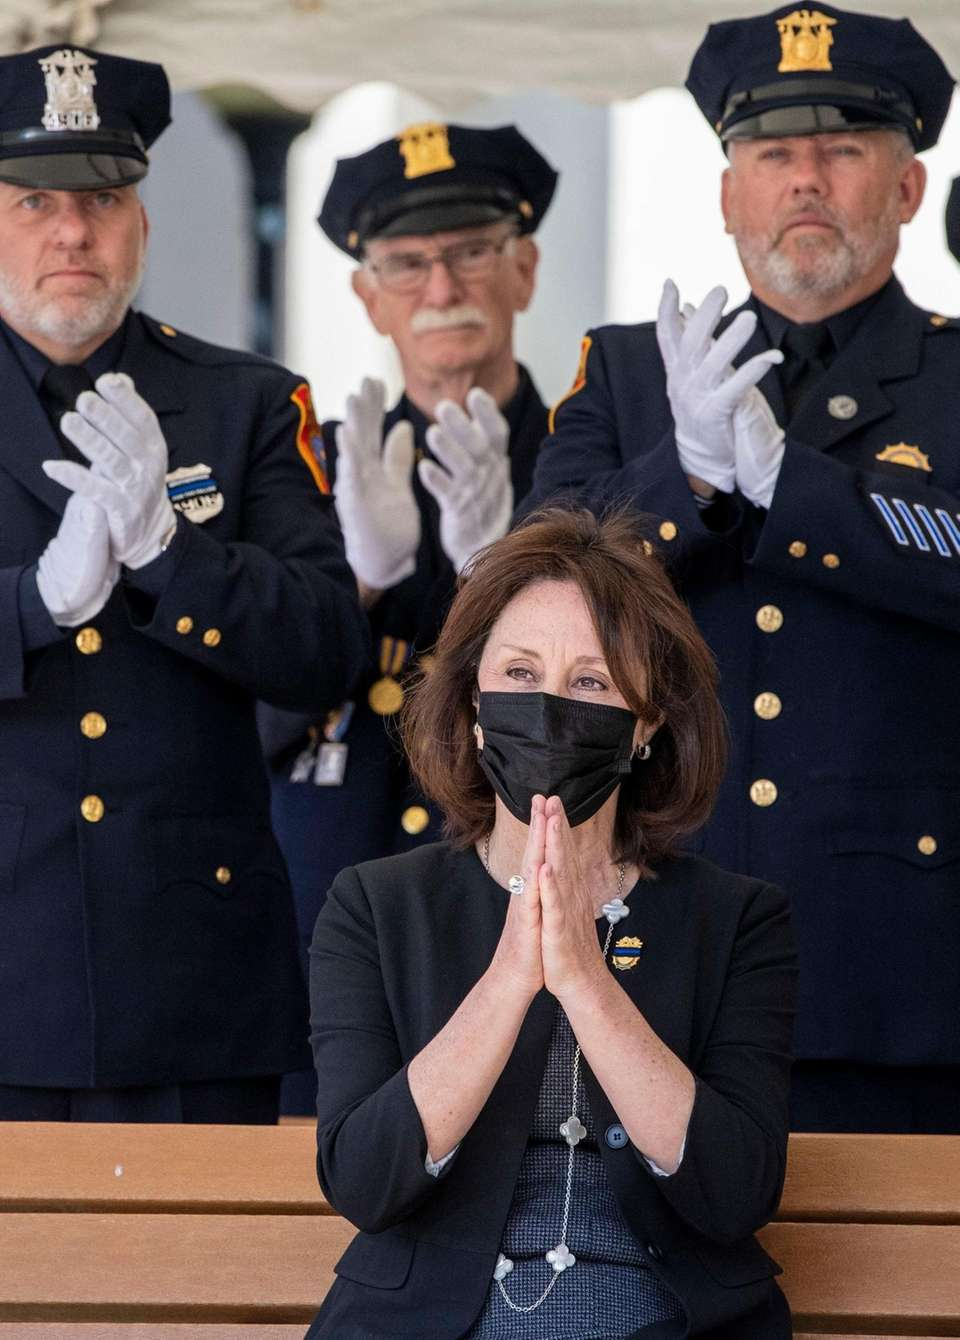 Suffolk County Police Commissioner Geraldine Hart says goodbye